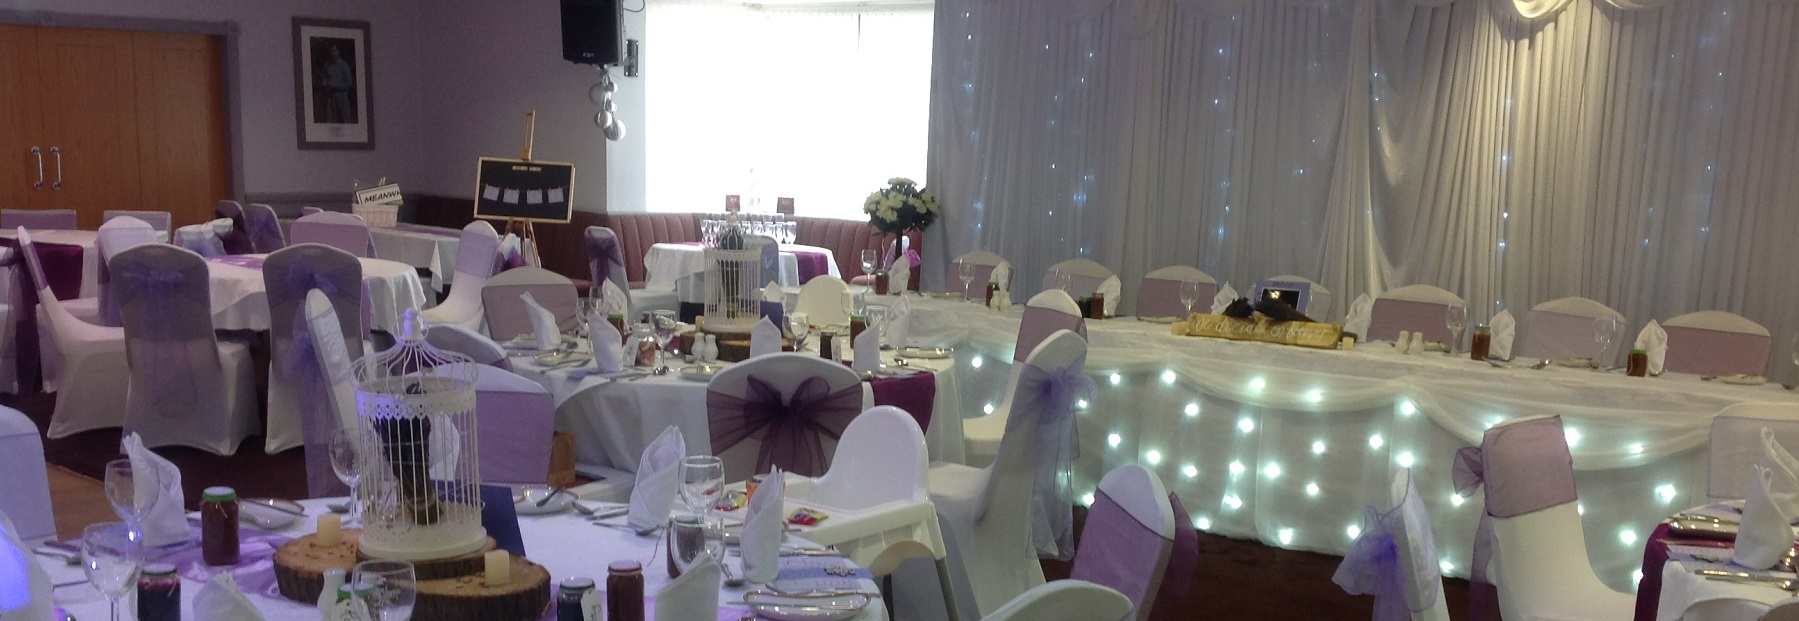 Wedding venue Aberdare South Wales